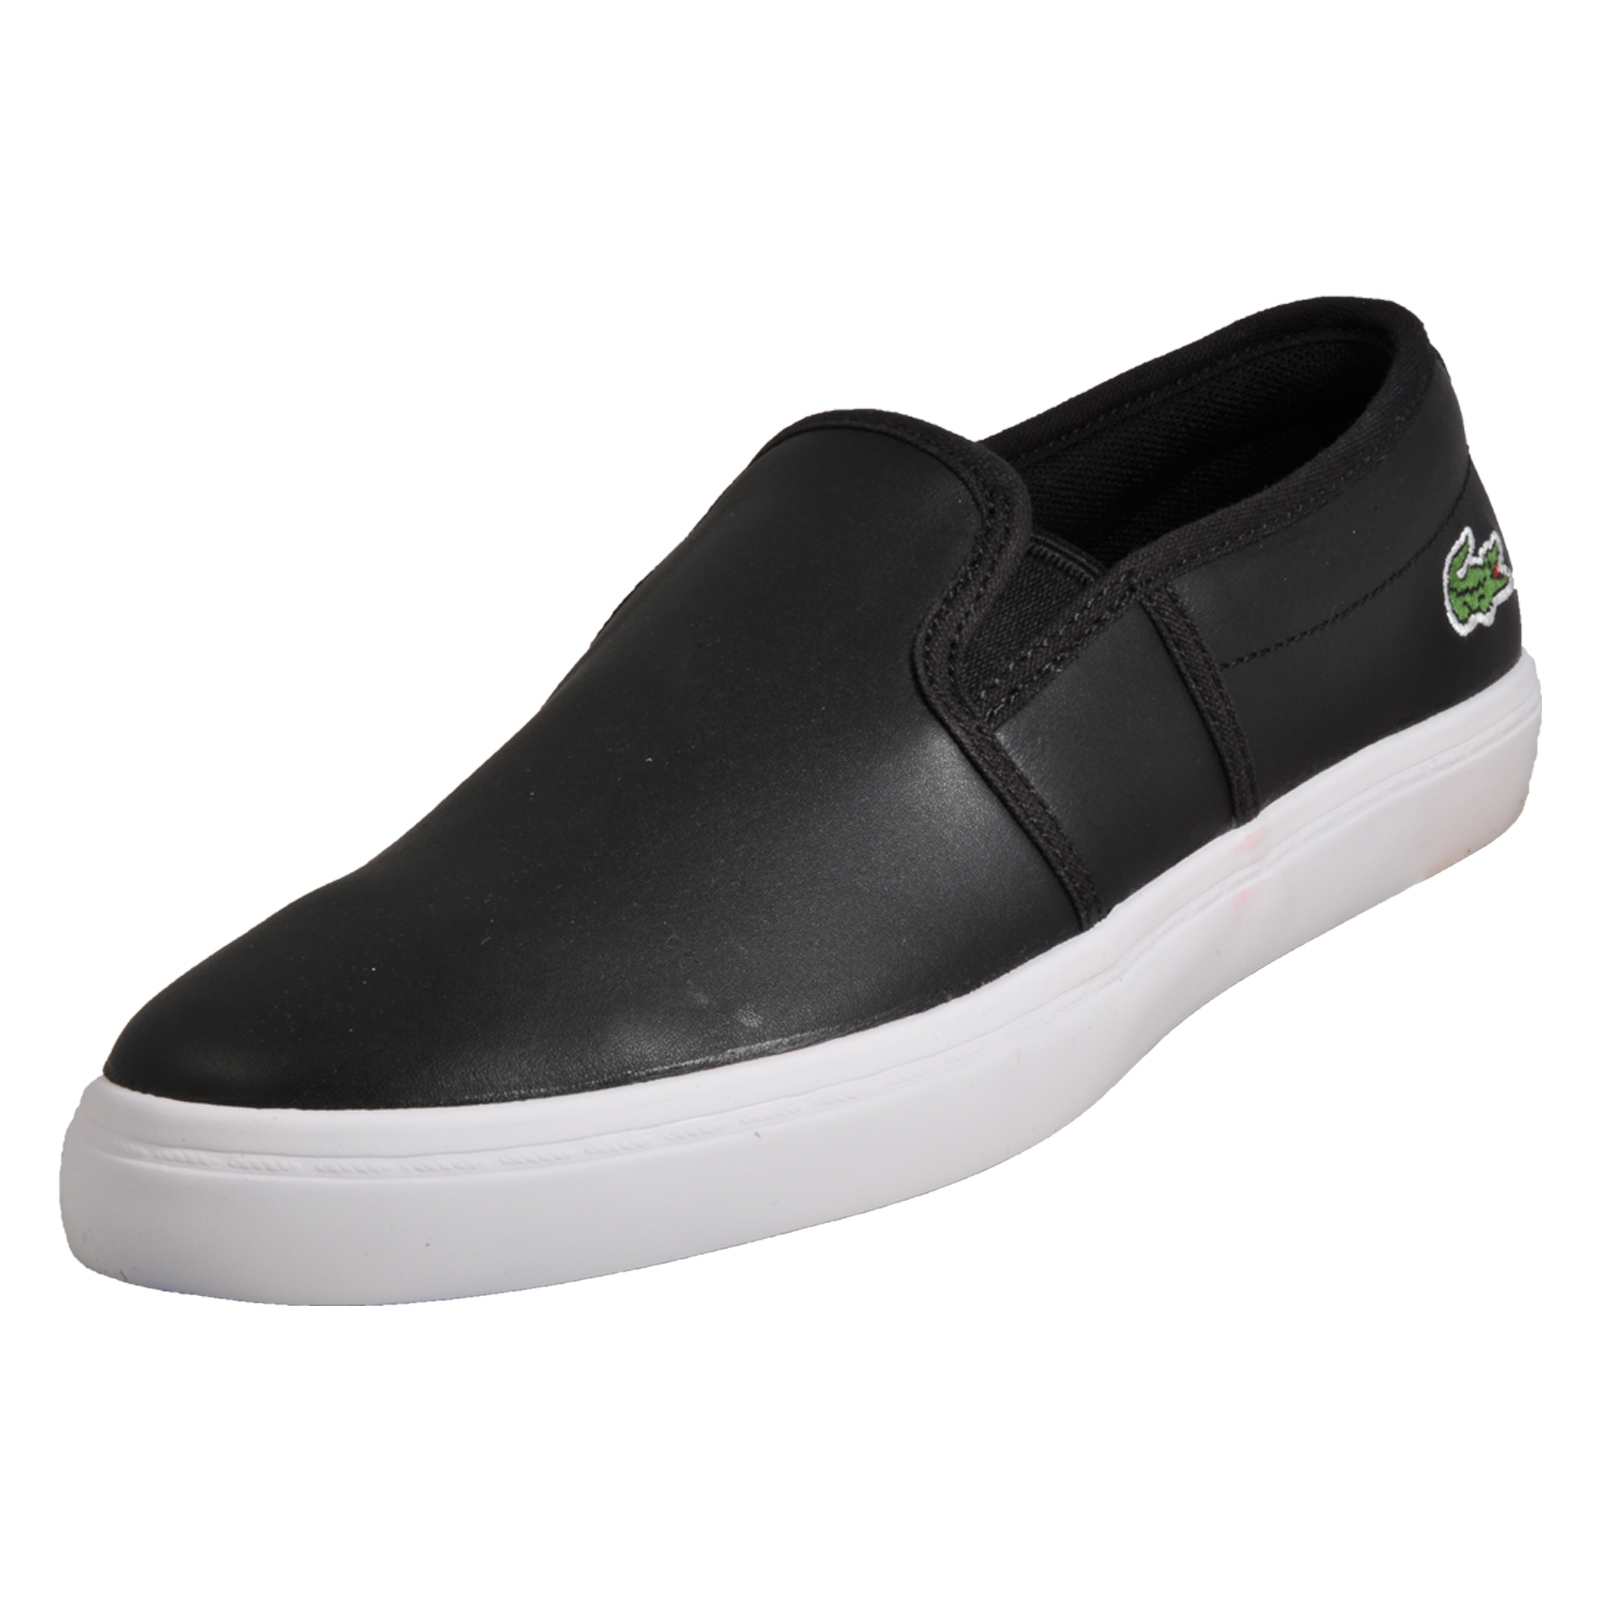 356f89f689c1d Details about Lacoste Gazon BL Womens Slip On Leather Retro Designer Trainers  Black B Grade